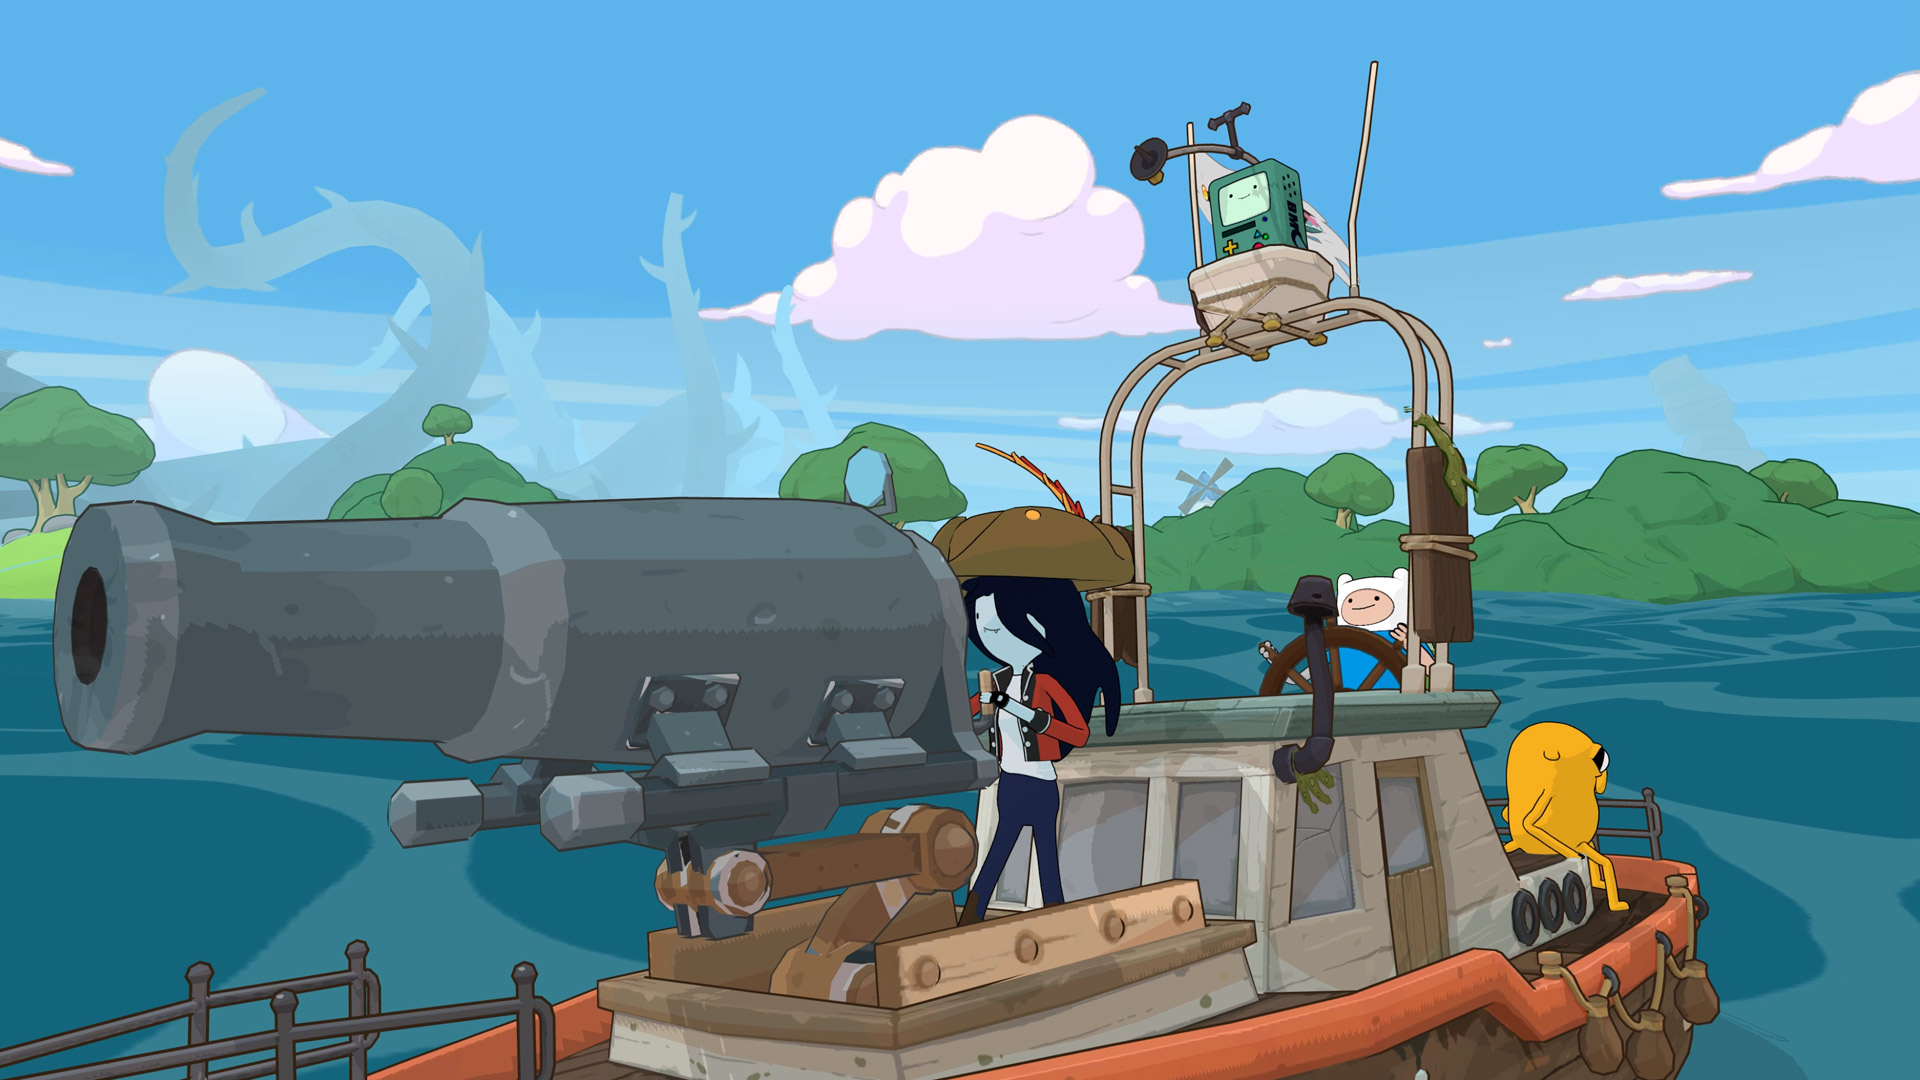 Free Adventure Time: Pirates of the Enchiridion Wallpaper in 1920x1080